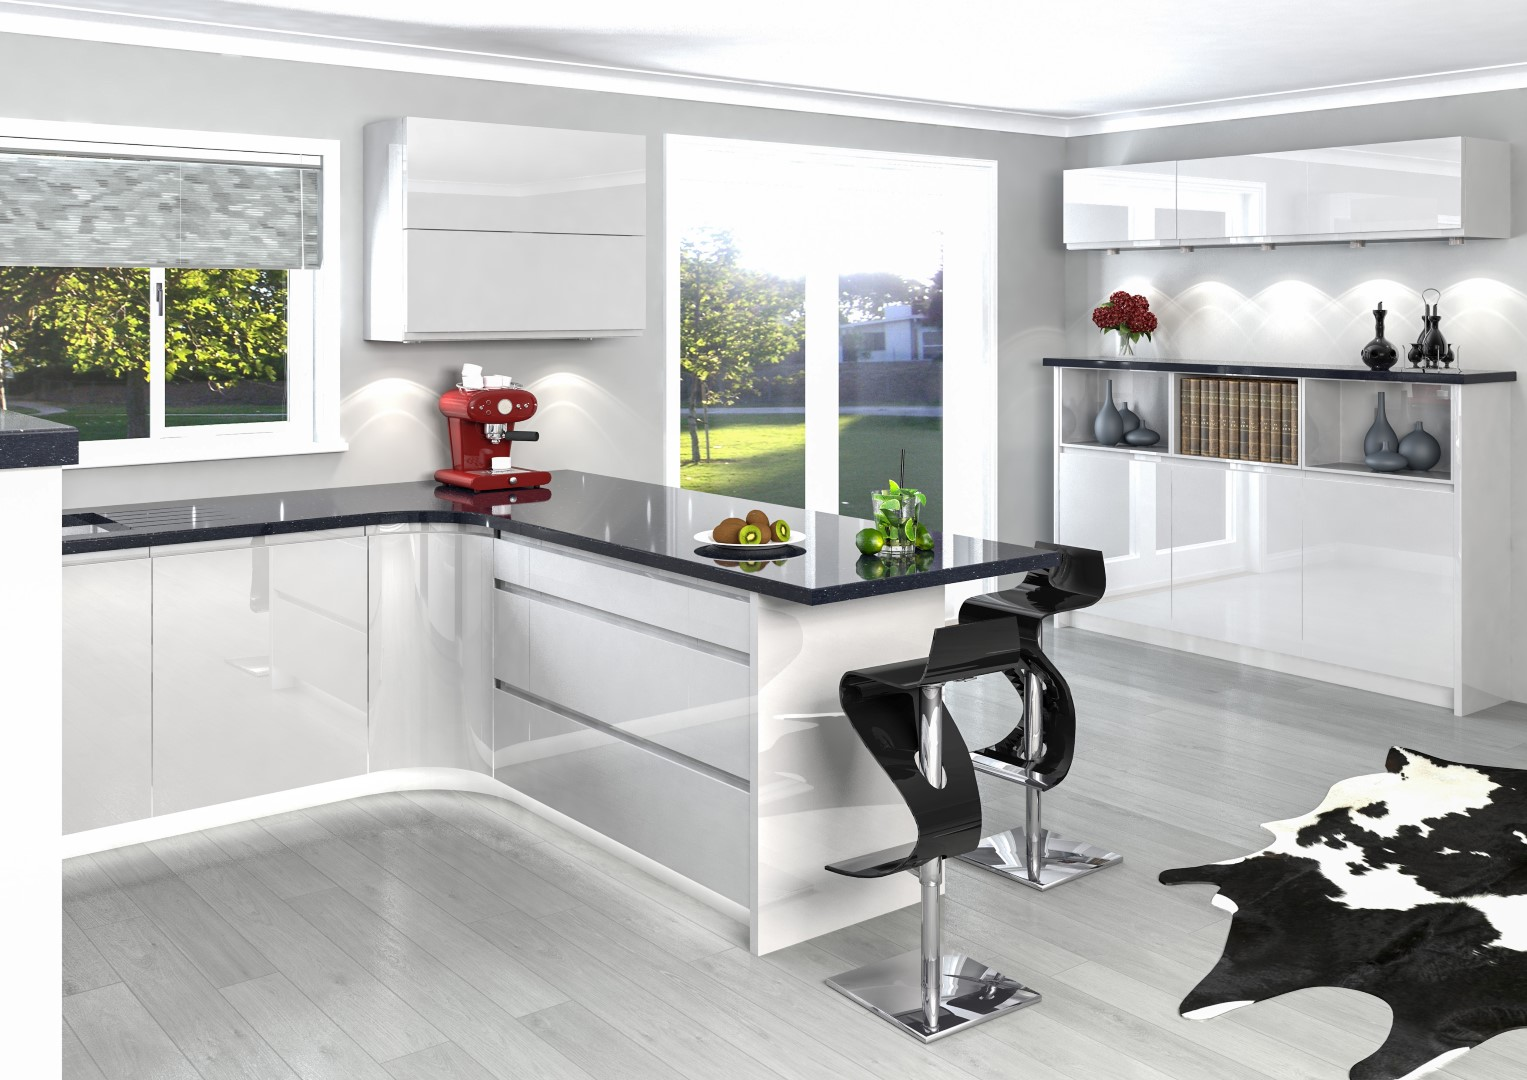 Kitchen design trends for 2016 priory kitchen studio